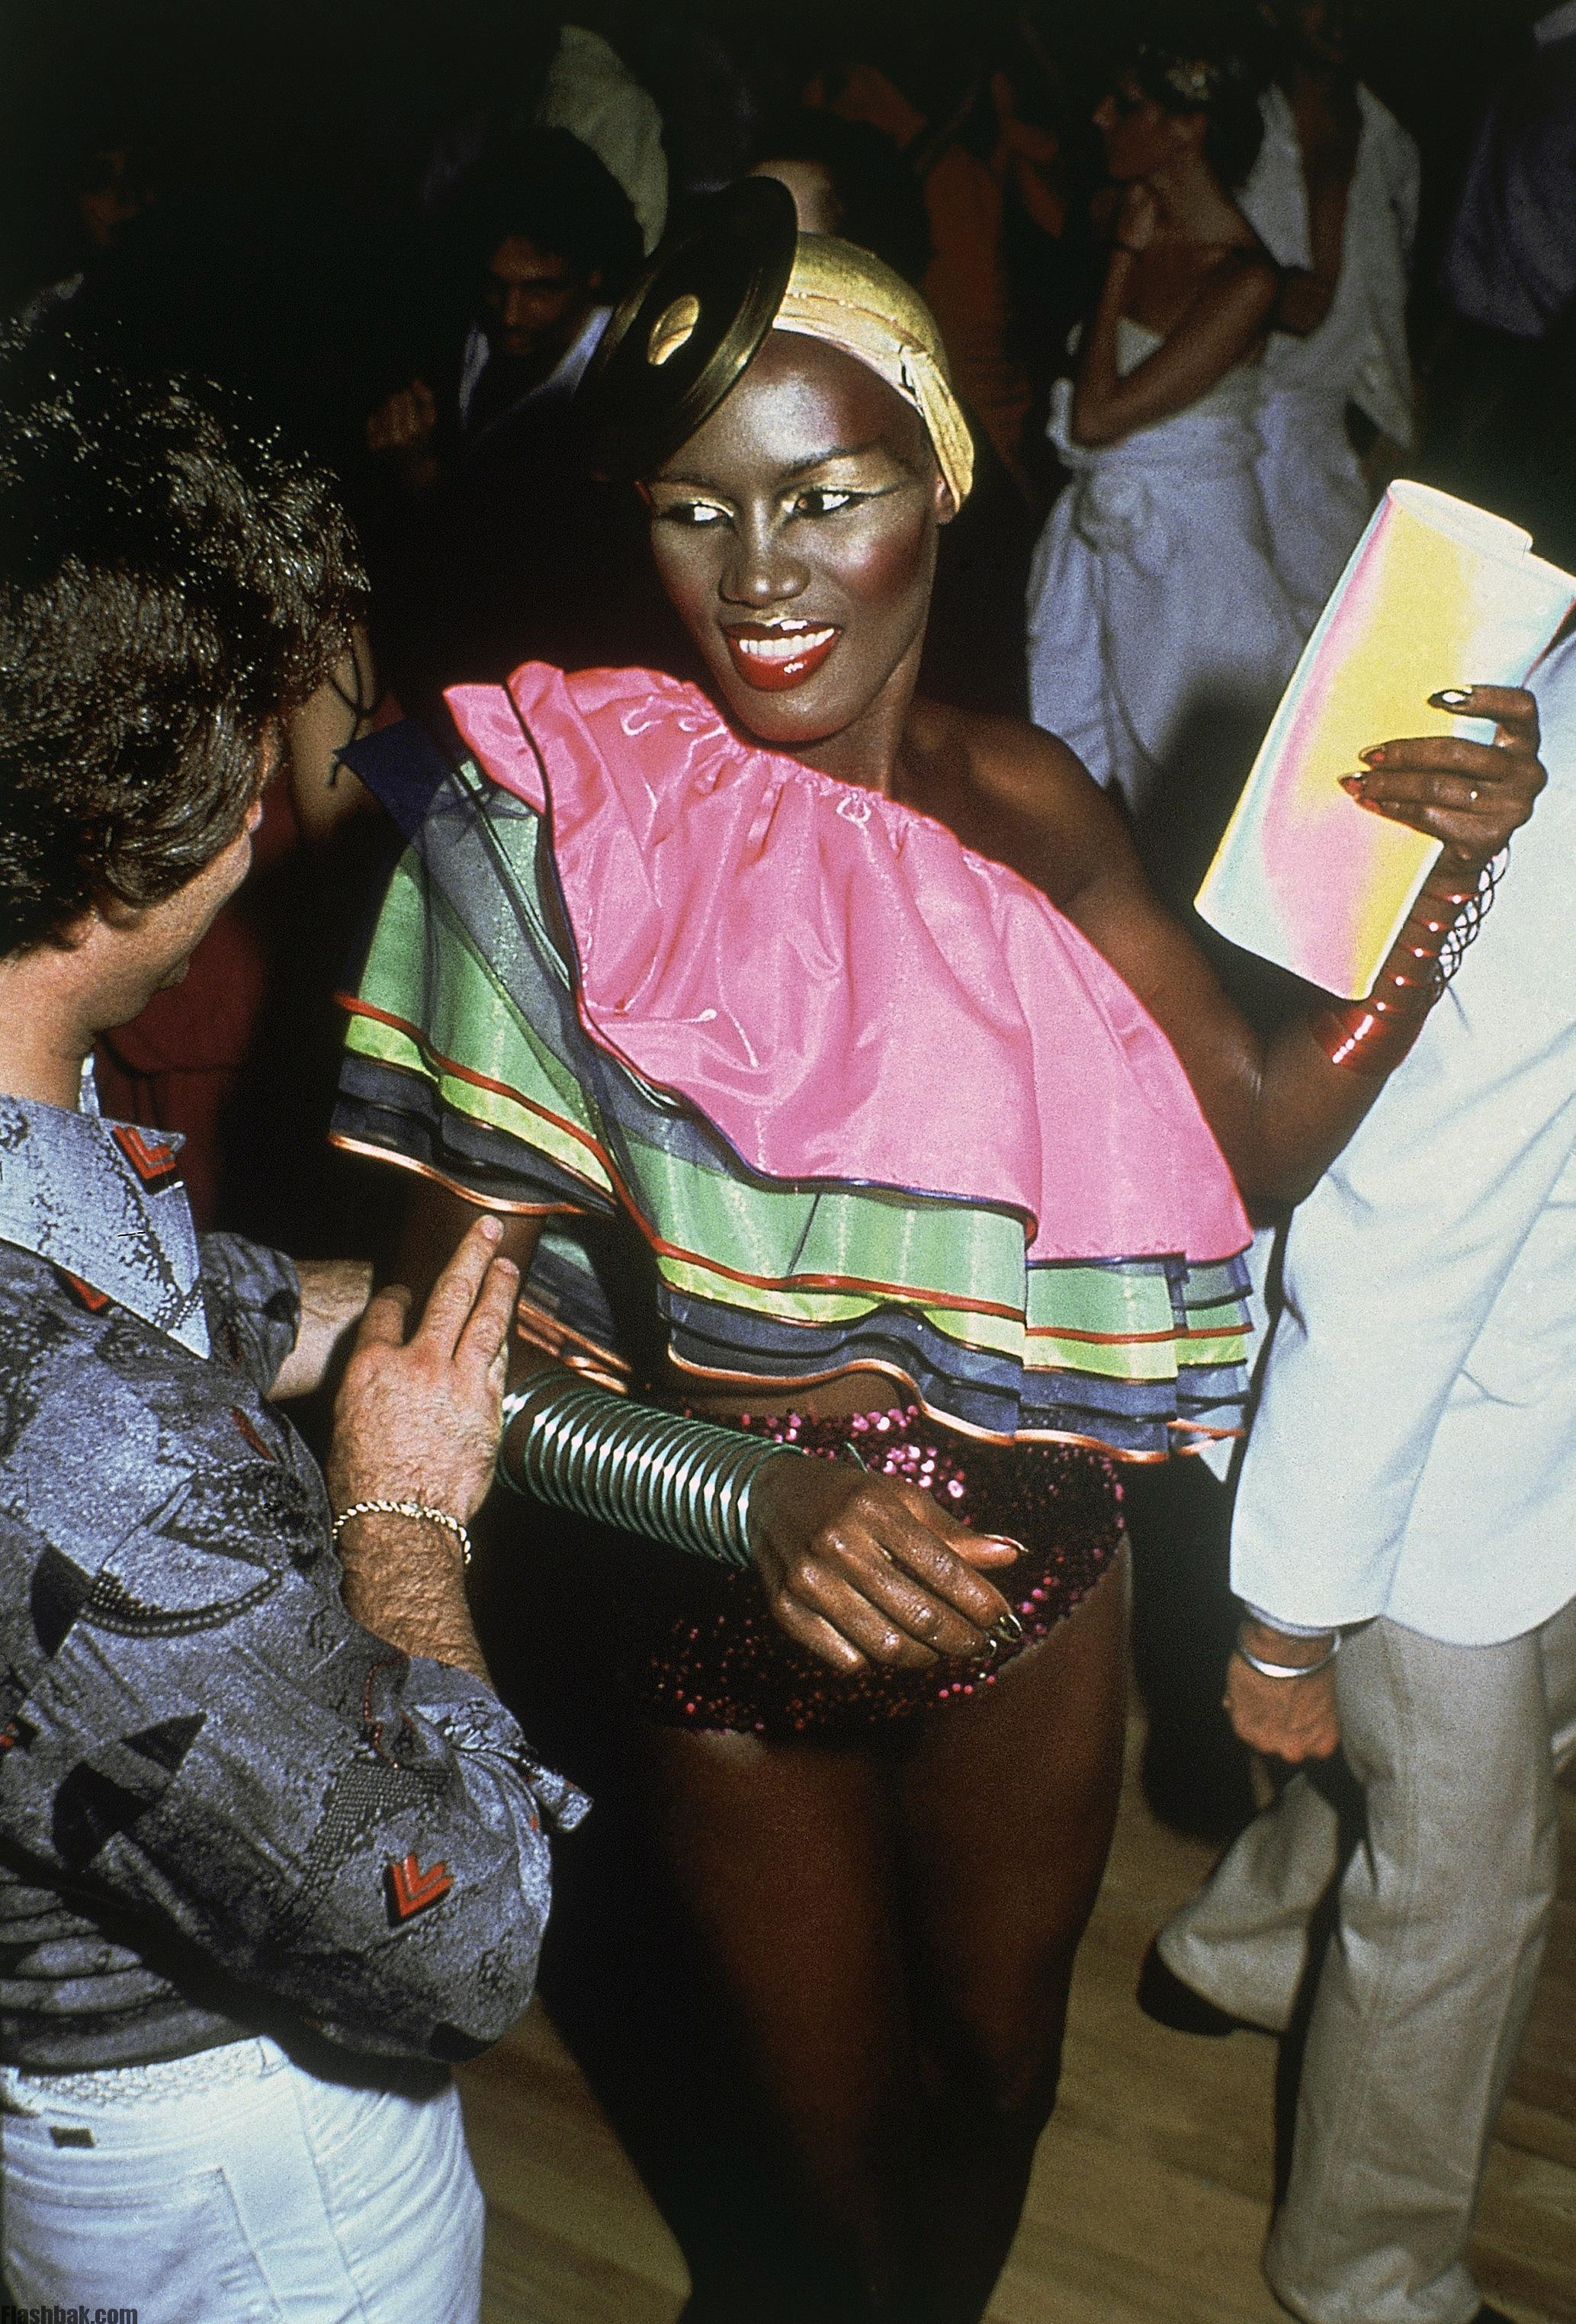 Singer Grace Jones at Studio 54 in New York in March 1979. (AP Photo)